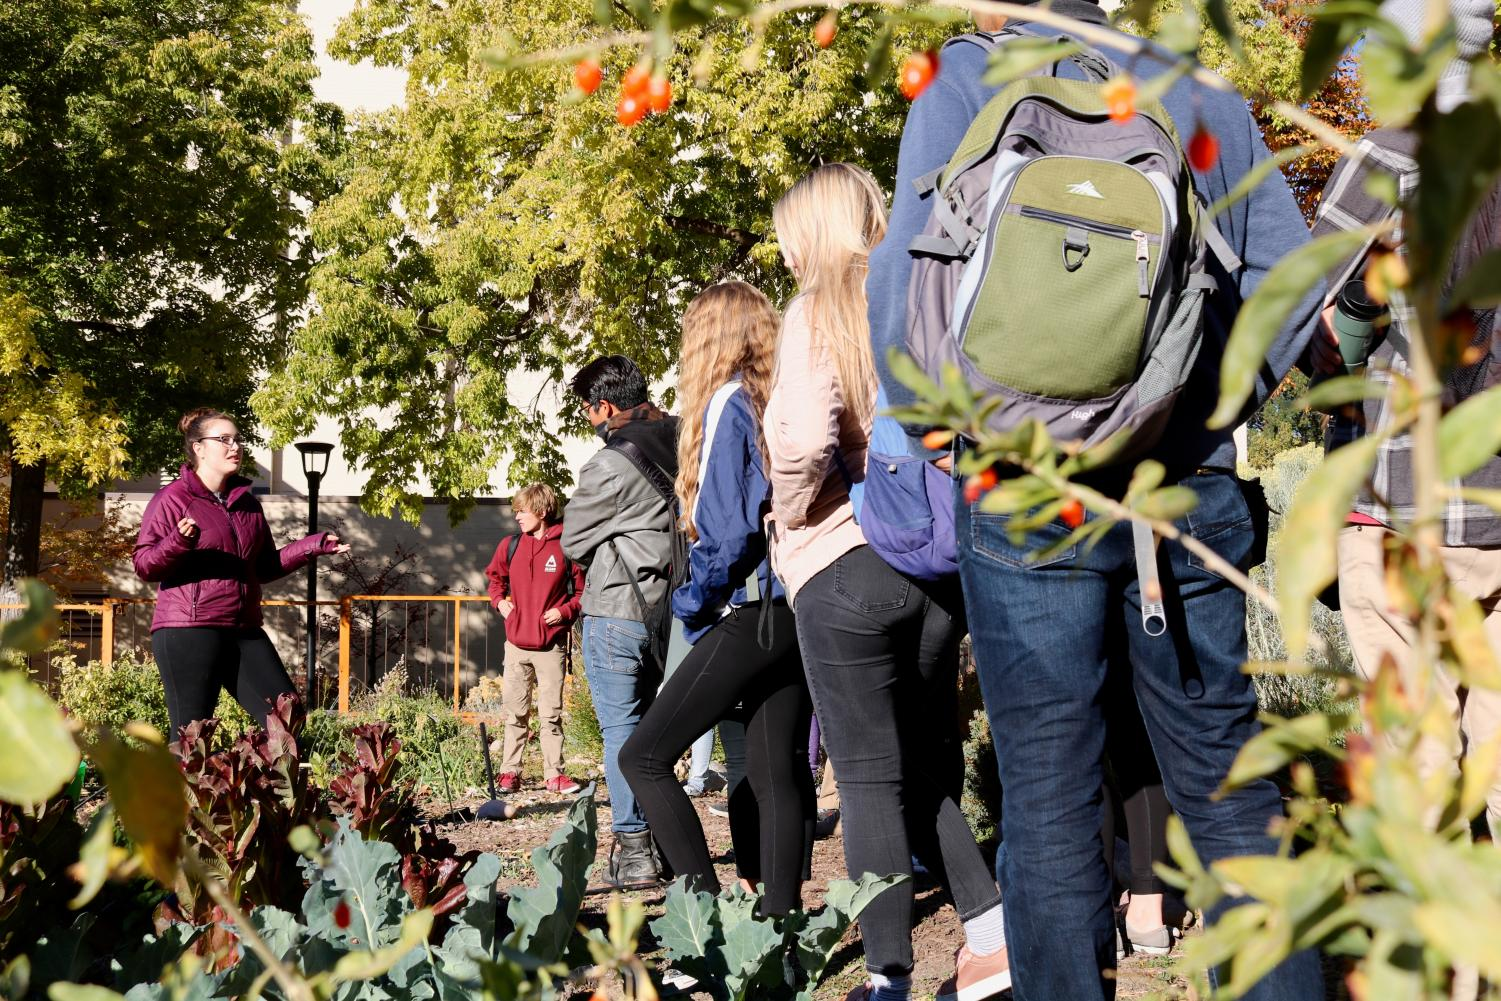 Students learn in one of the edible campus gardens. (Courtesy of Jessica Kemper)